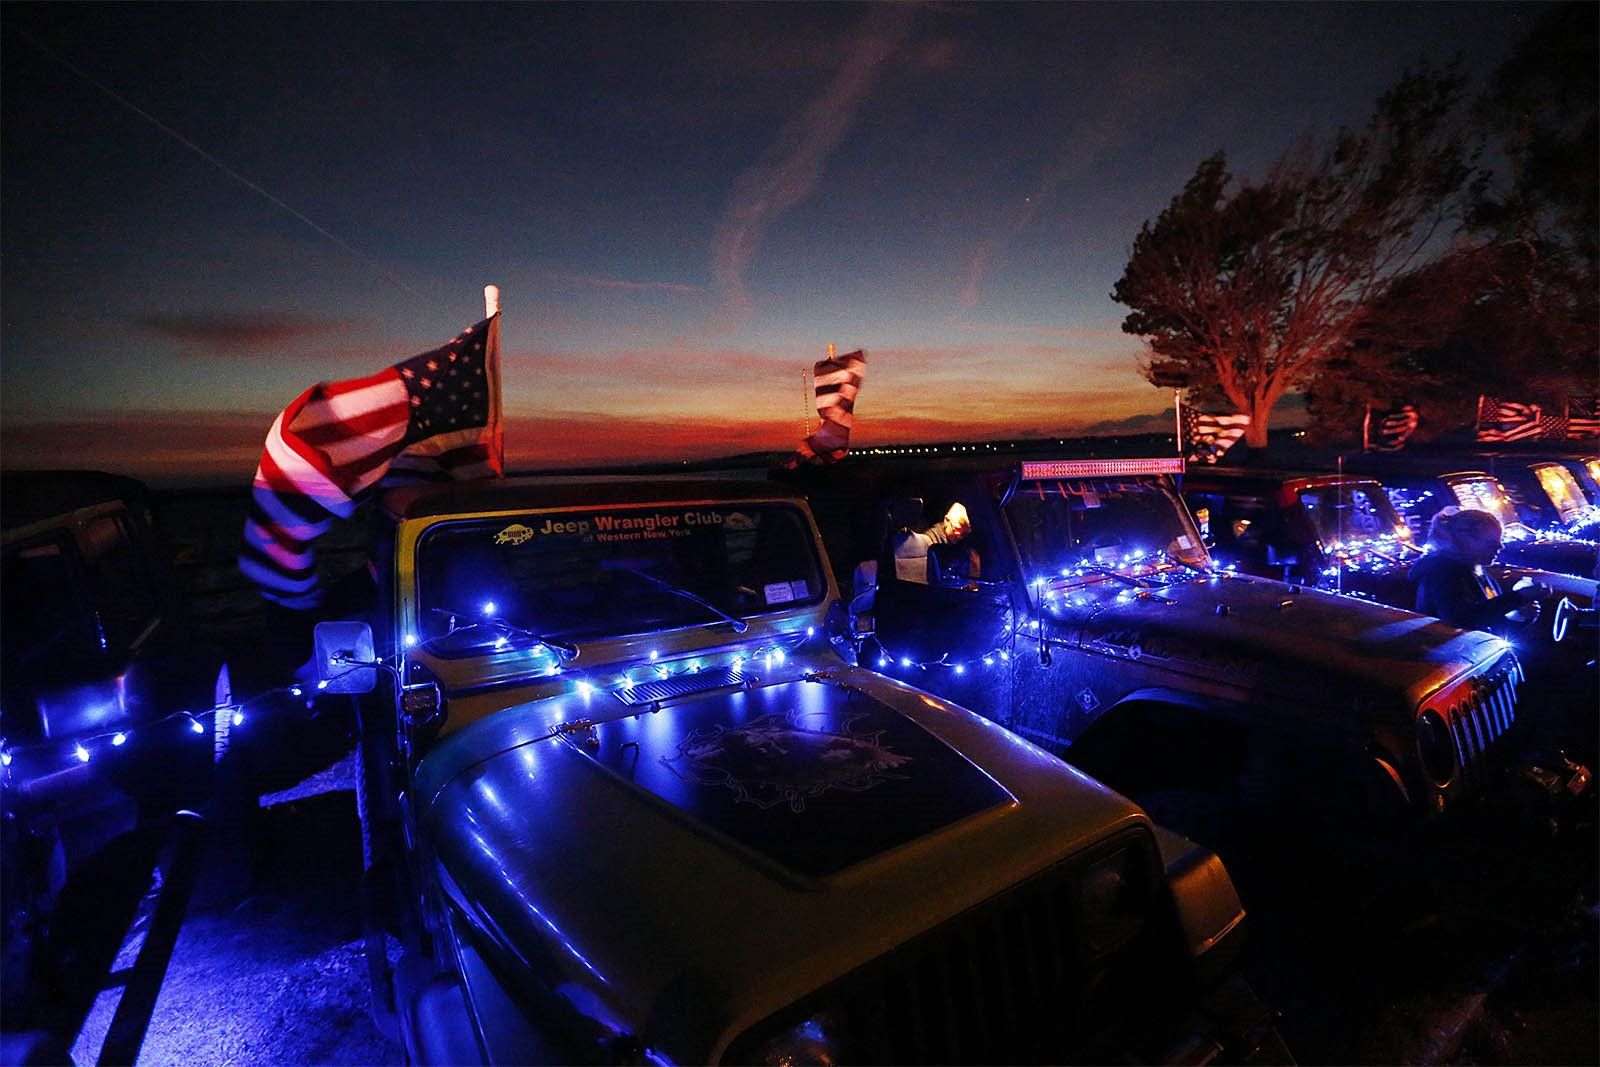 The Jeep Wrangler Club of Western New York lined the park with Jeeps lit in blue. The club organized the Blue Light  Vigil at LaSalle Park on Oct. 19 to mourn the loss of Buffalo Police Officer Craig Lehner.